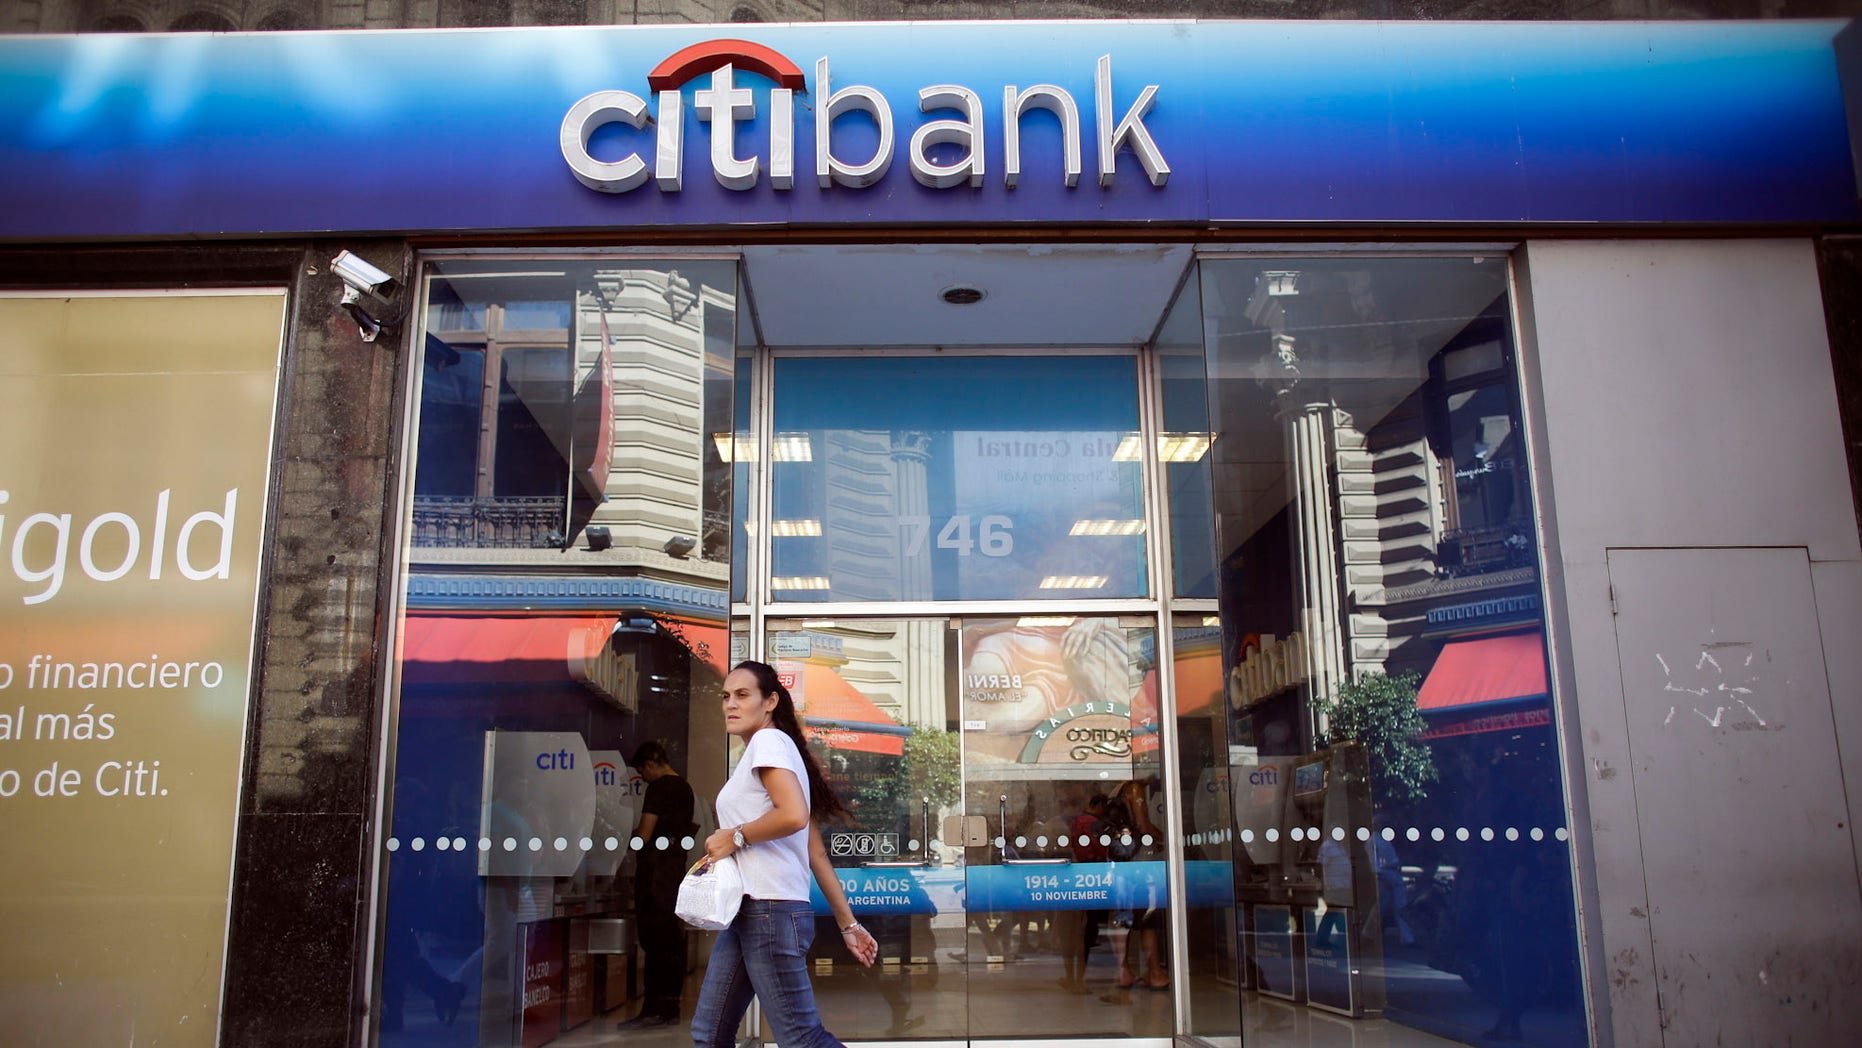 A woman walks by a Citibank branch in Buenos Aires, Argentina, Tuesday, March 17, 2015. Citibank said Tuesday it was getting out of the business of making bond payments for Argentina, the latest fallout from a bitter court fight between the South American country and a group of bondholders in the U.S. (AP Photo/Victor R. Caivano)